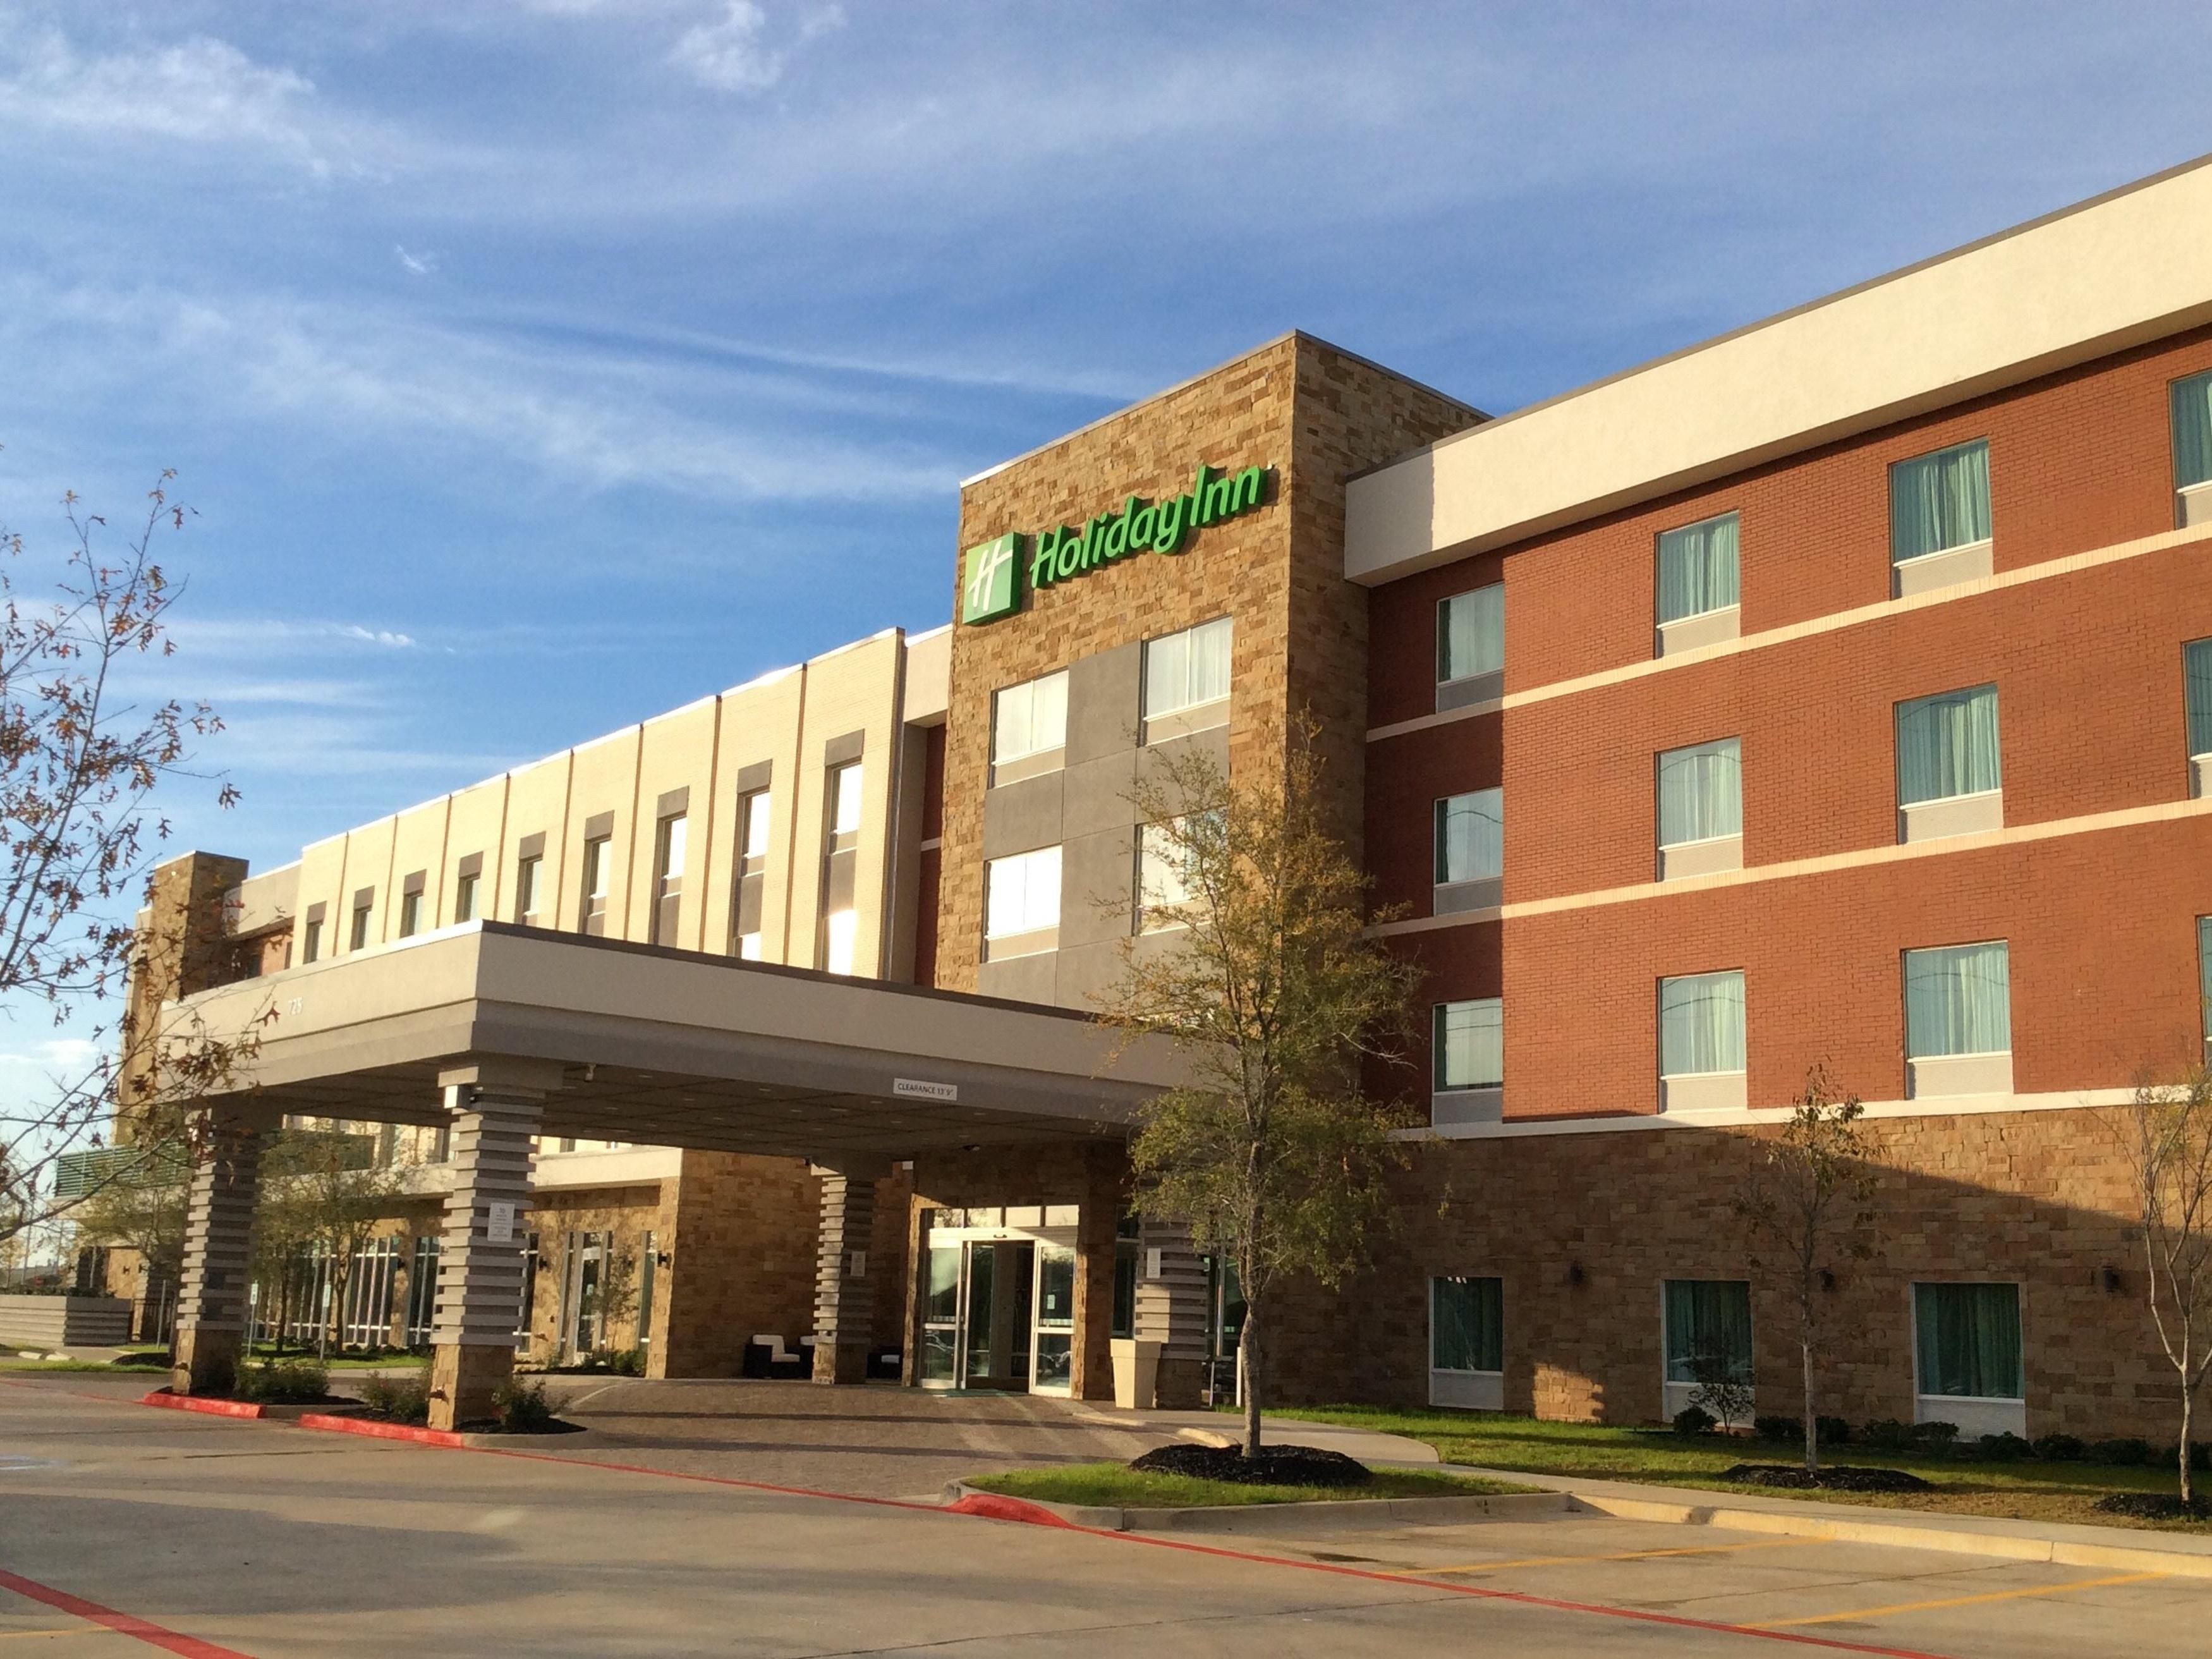 Find Addison Hotels | Top 70 Hotels in Addison, TX by IHG